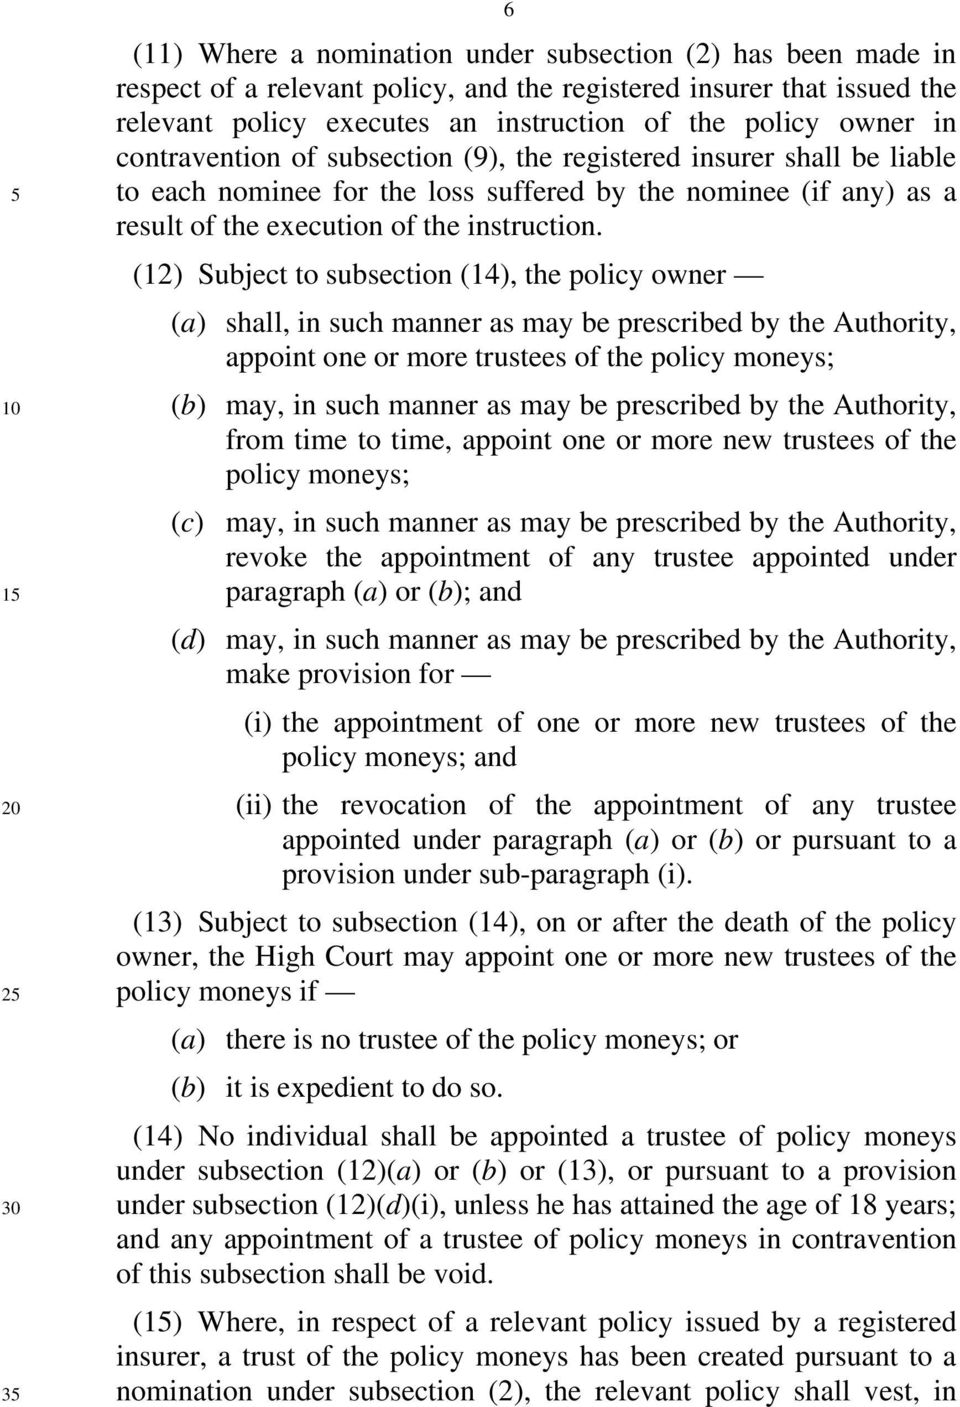 (12) Subject to subsection (14), the policy owner (a) shall, in such manner as may be prescribed by the Authority, appoint one or more trustees of the policy moneys; (b) may, in such manner as may be